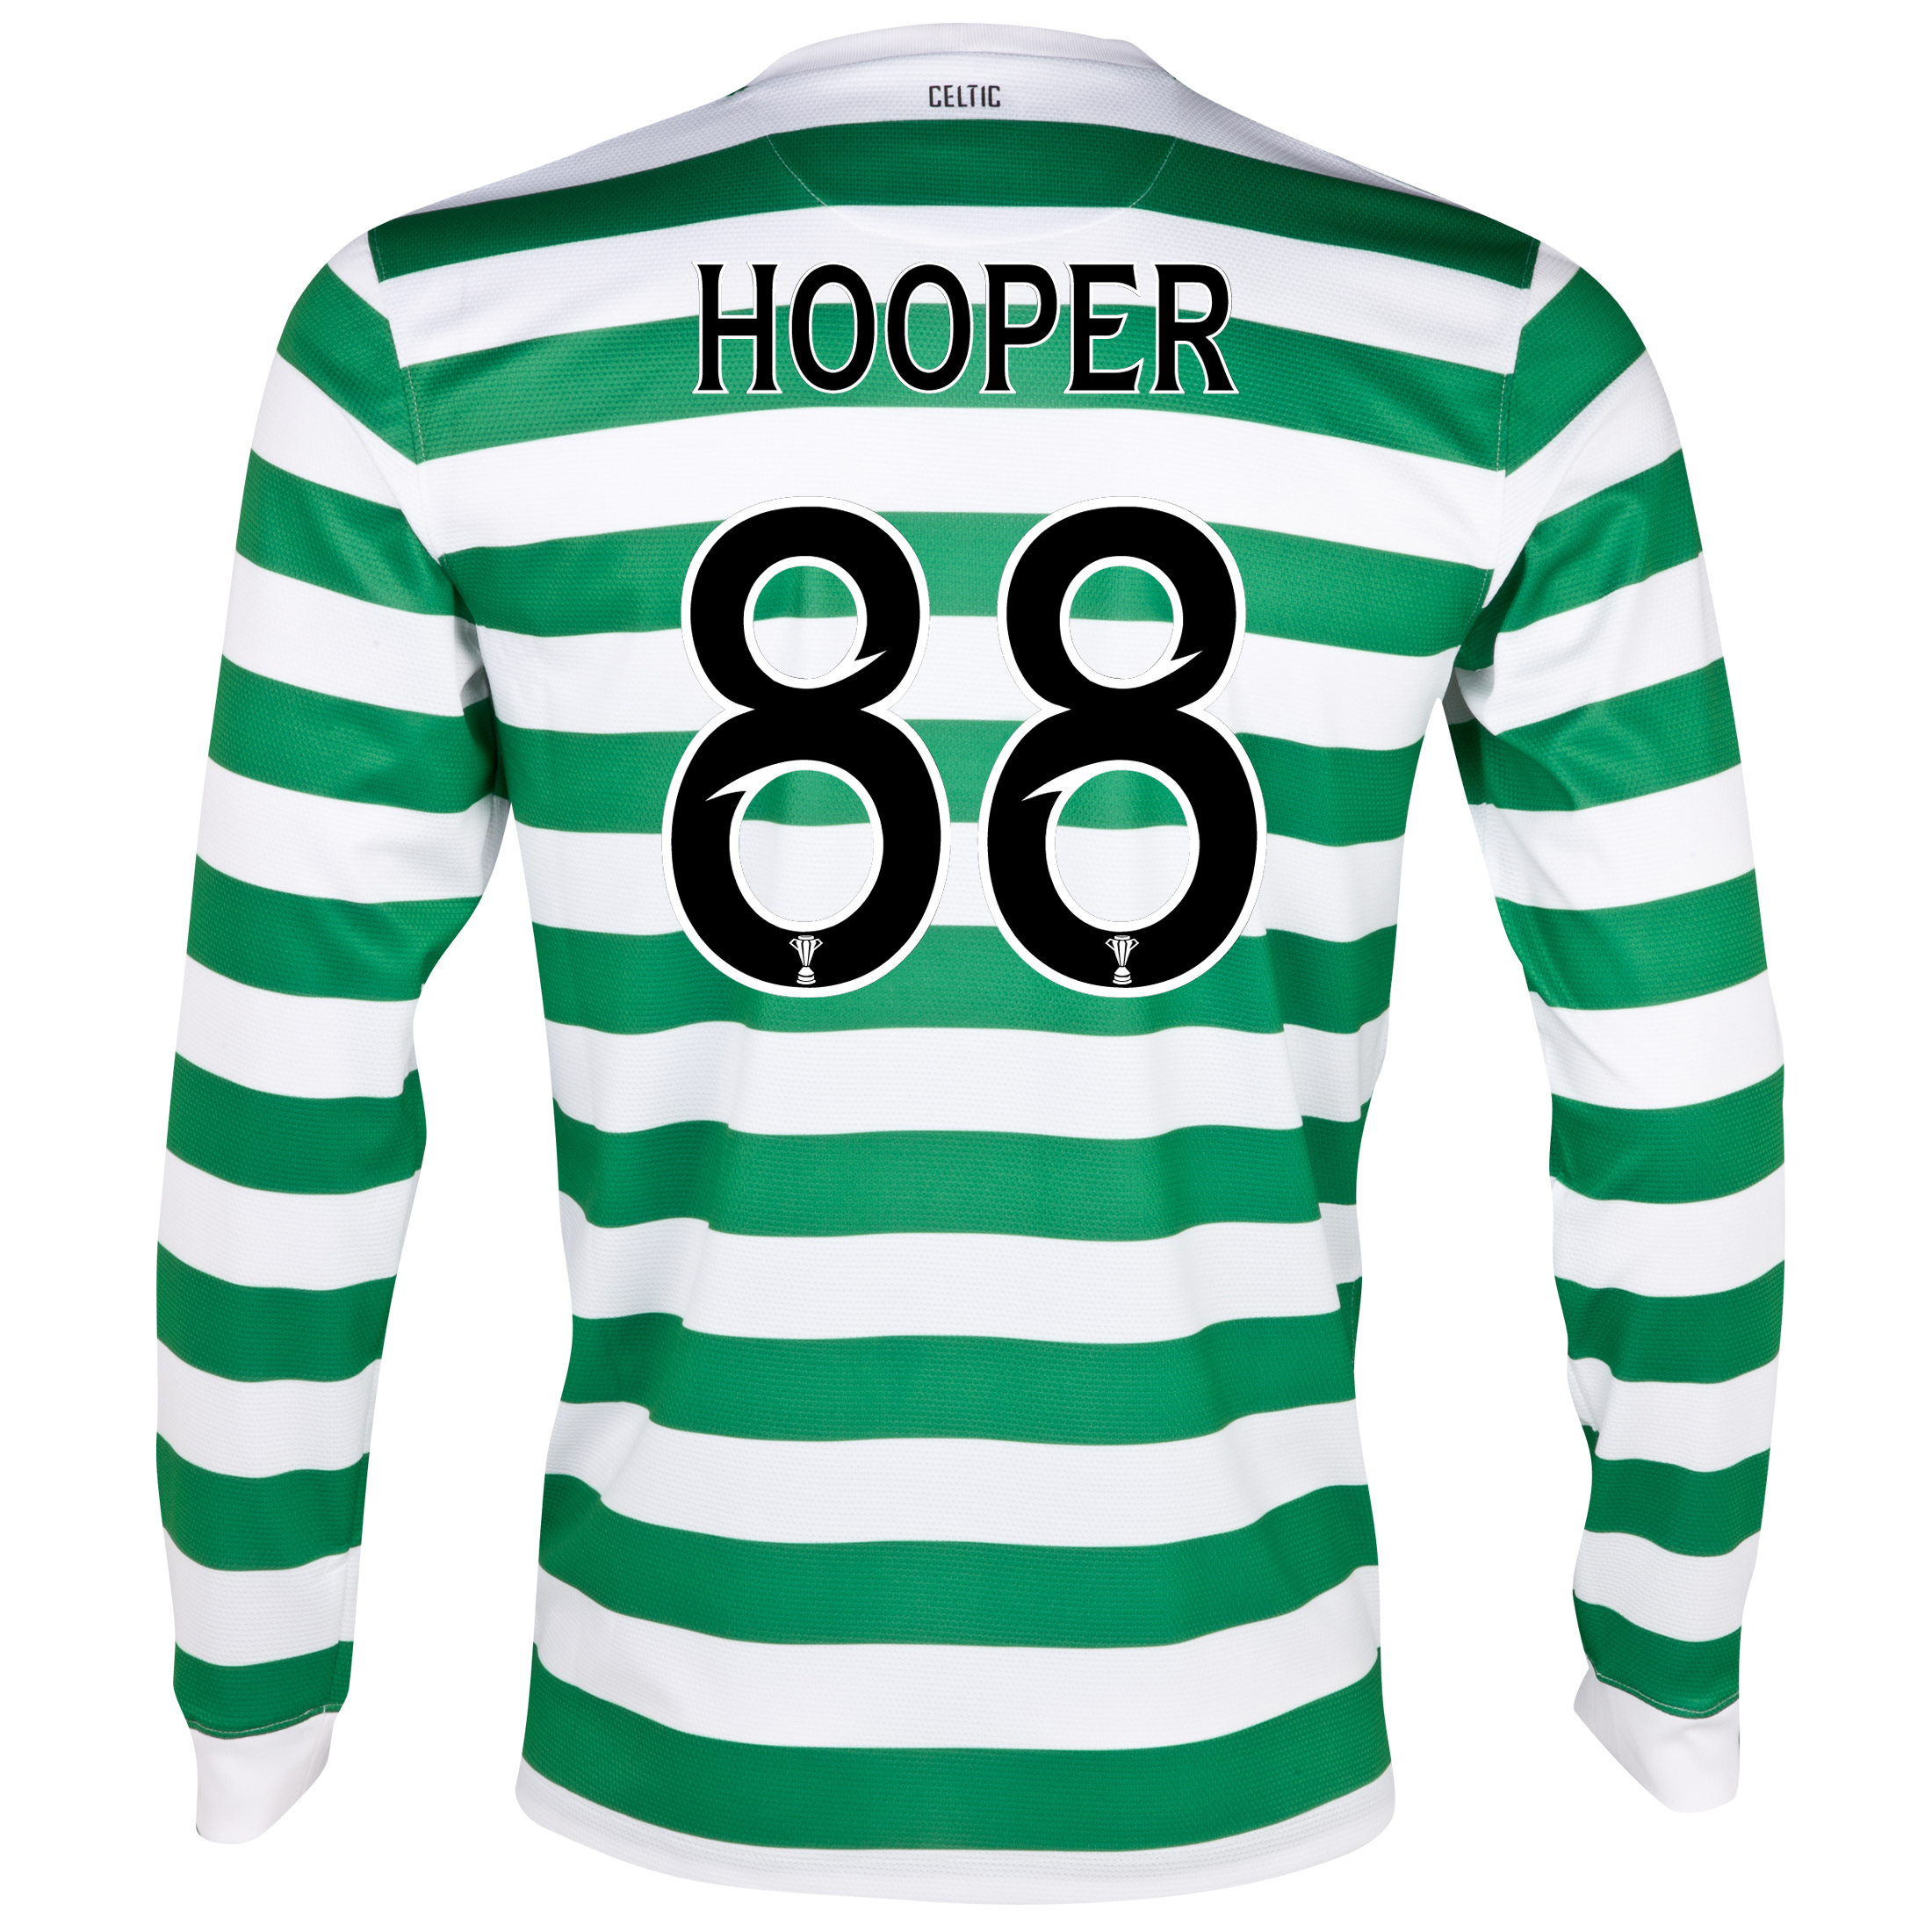 Celtic Home Shirt 2012/13 - Long Sleeved - No Sponsor with Hooper 88 printing